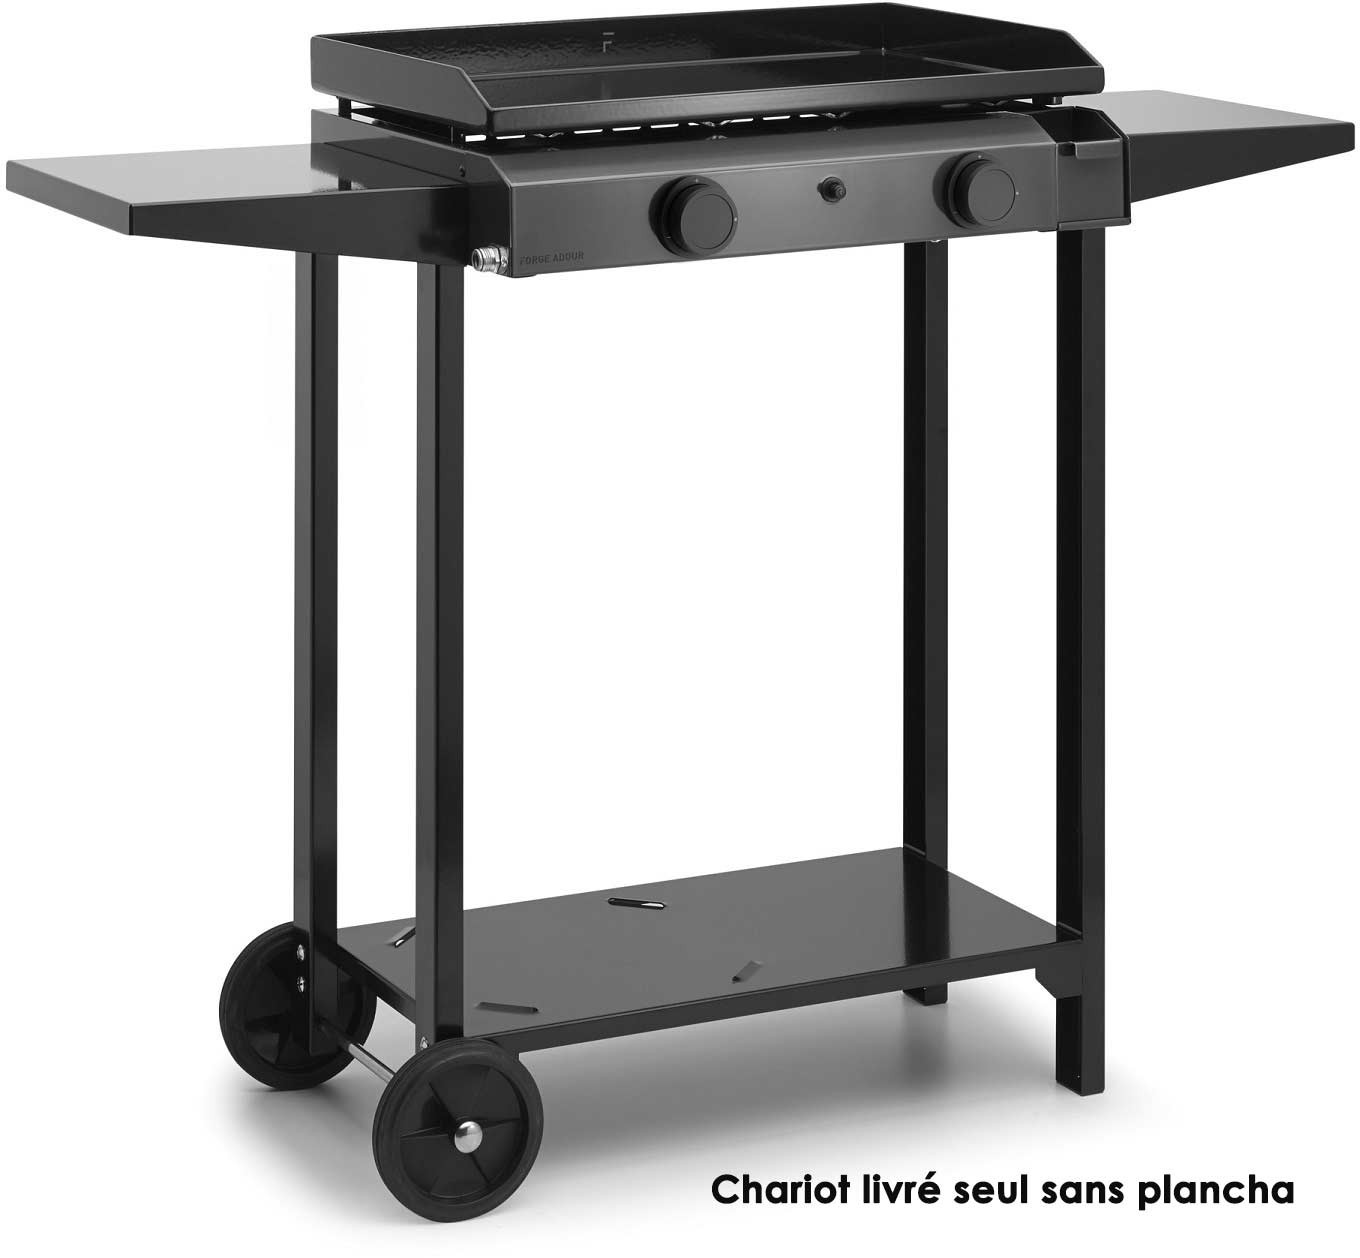 FORGE ADOUR - CH BA 60